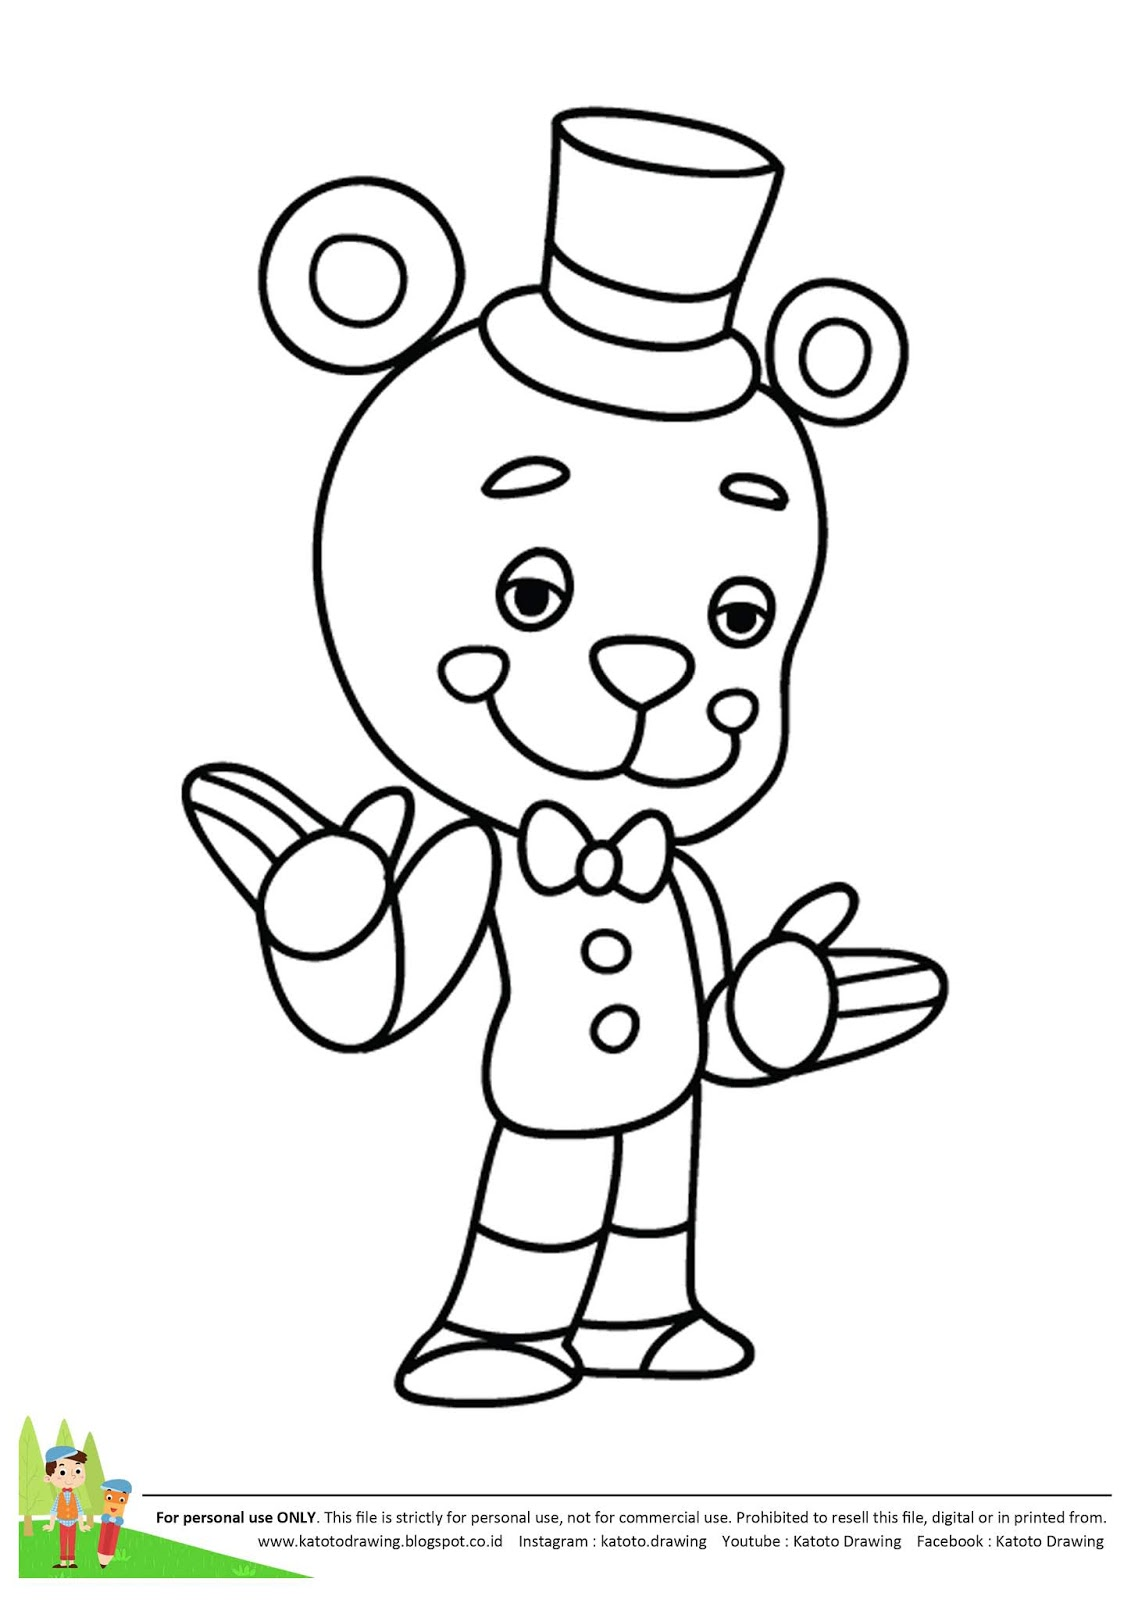 picture about Free Printable Five Nights at Freddy's Coloring Pages called Katoto Drawing Information: Langkah menggambar dan mewarnai